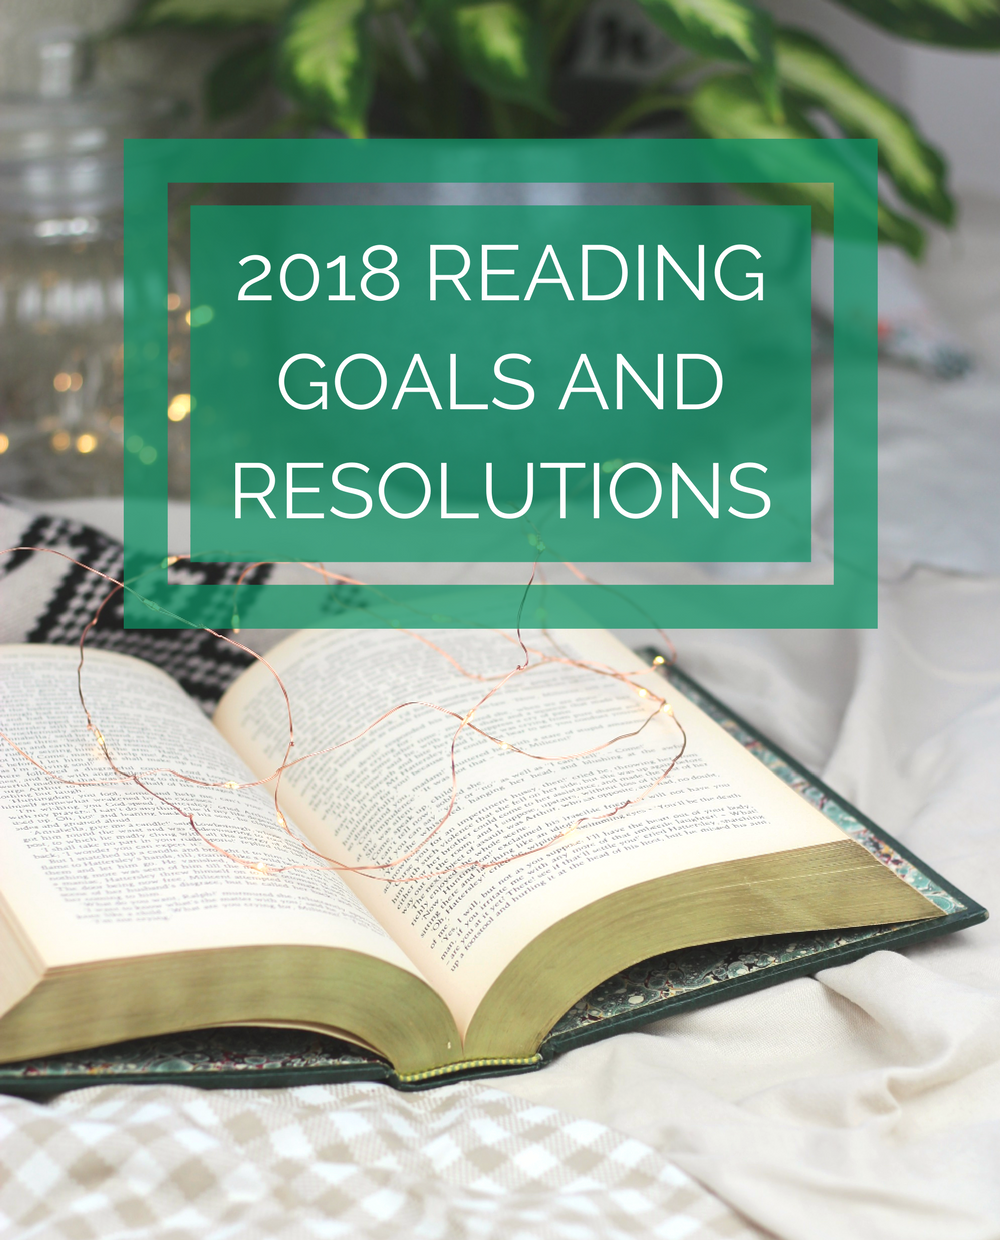 2018 Reading Goals and Resolutions